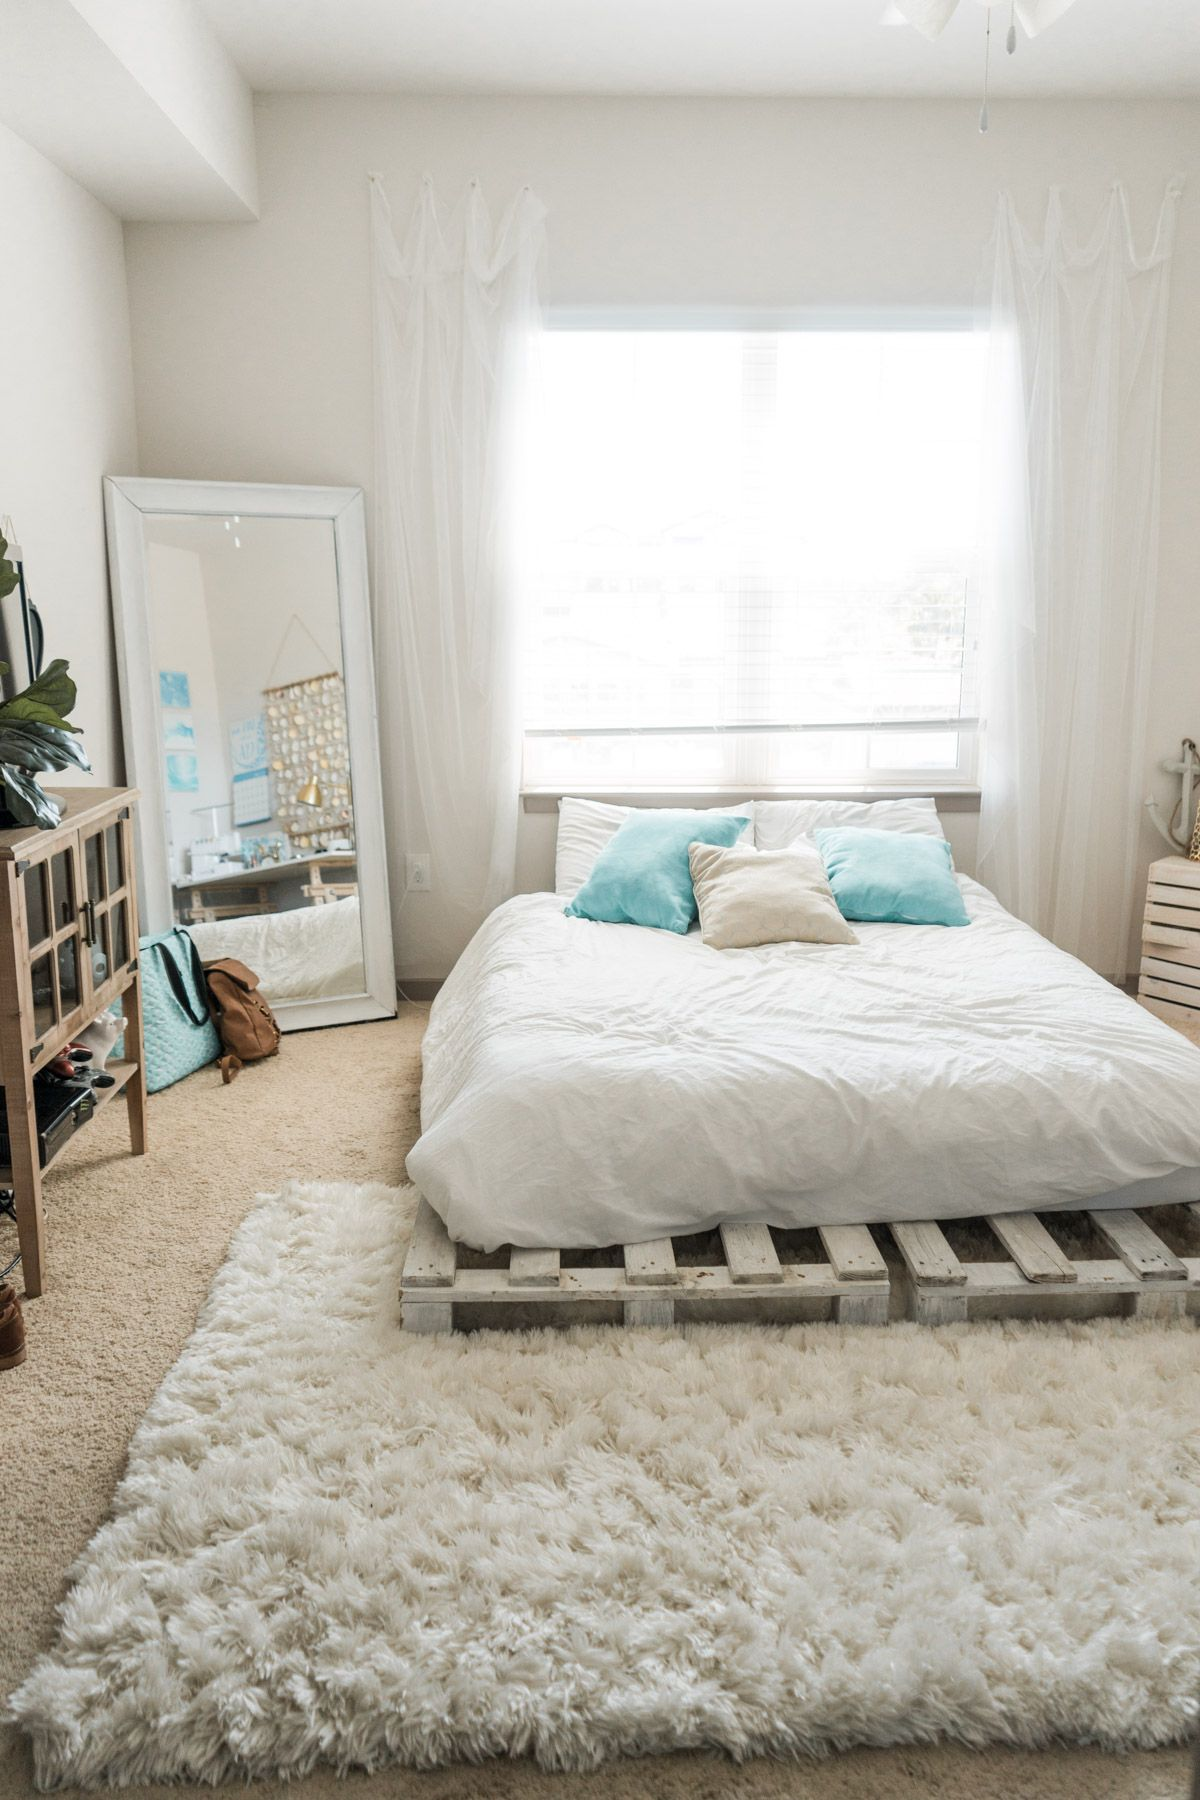 Beachy Boho Bedroom & Office | Room ideas bedroom, Bedroom ... on Modern Boho Bed Frame  id=12901